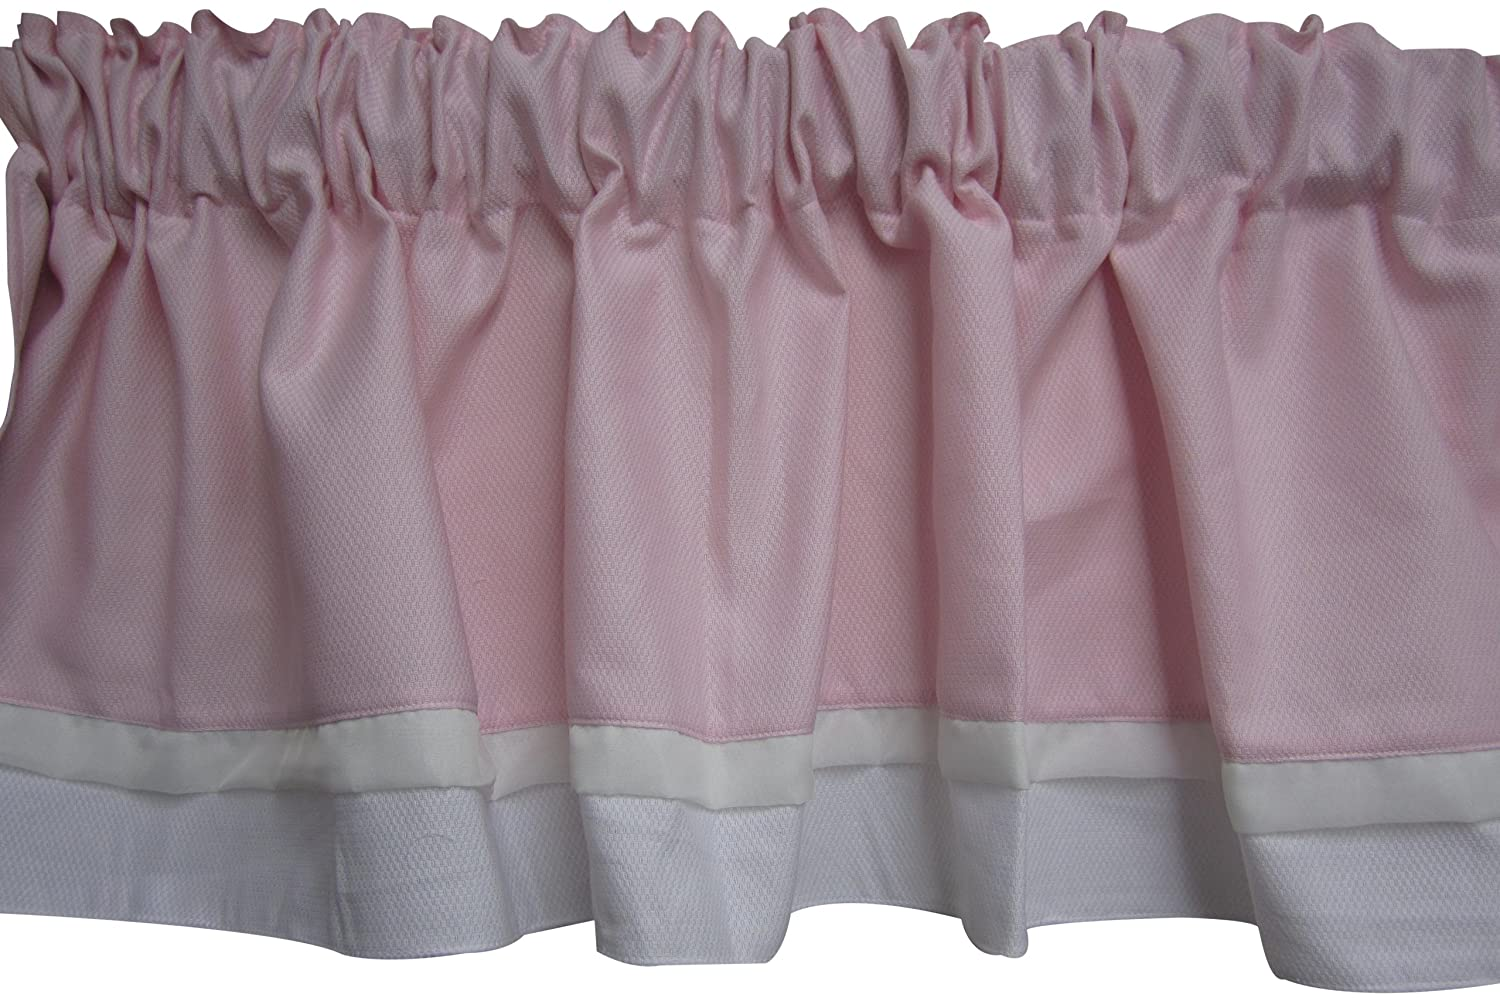 Pink Baby Doll Bedding Classic Bows Valance